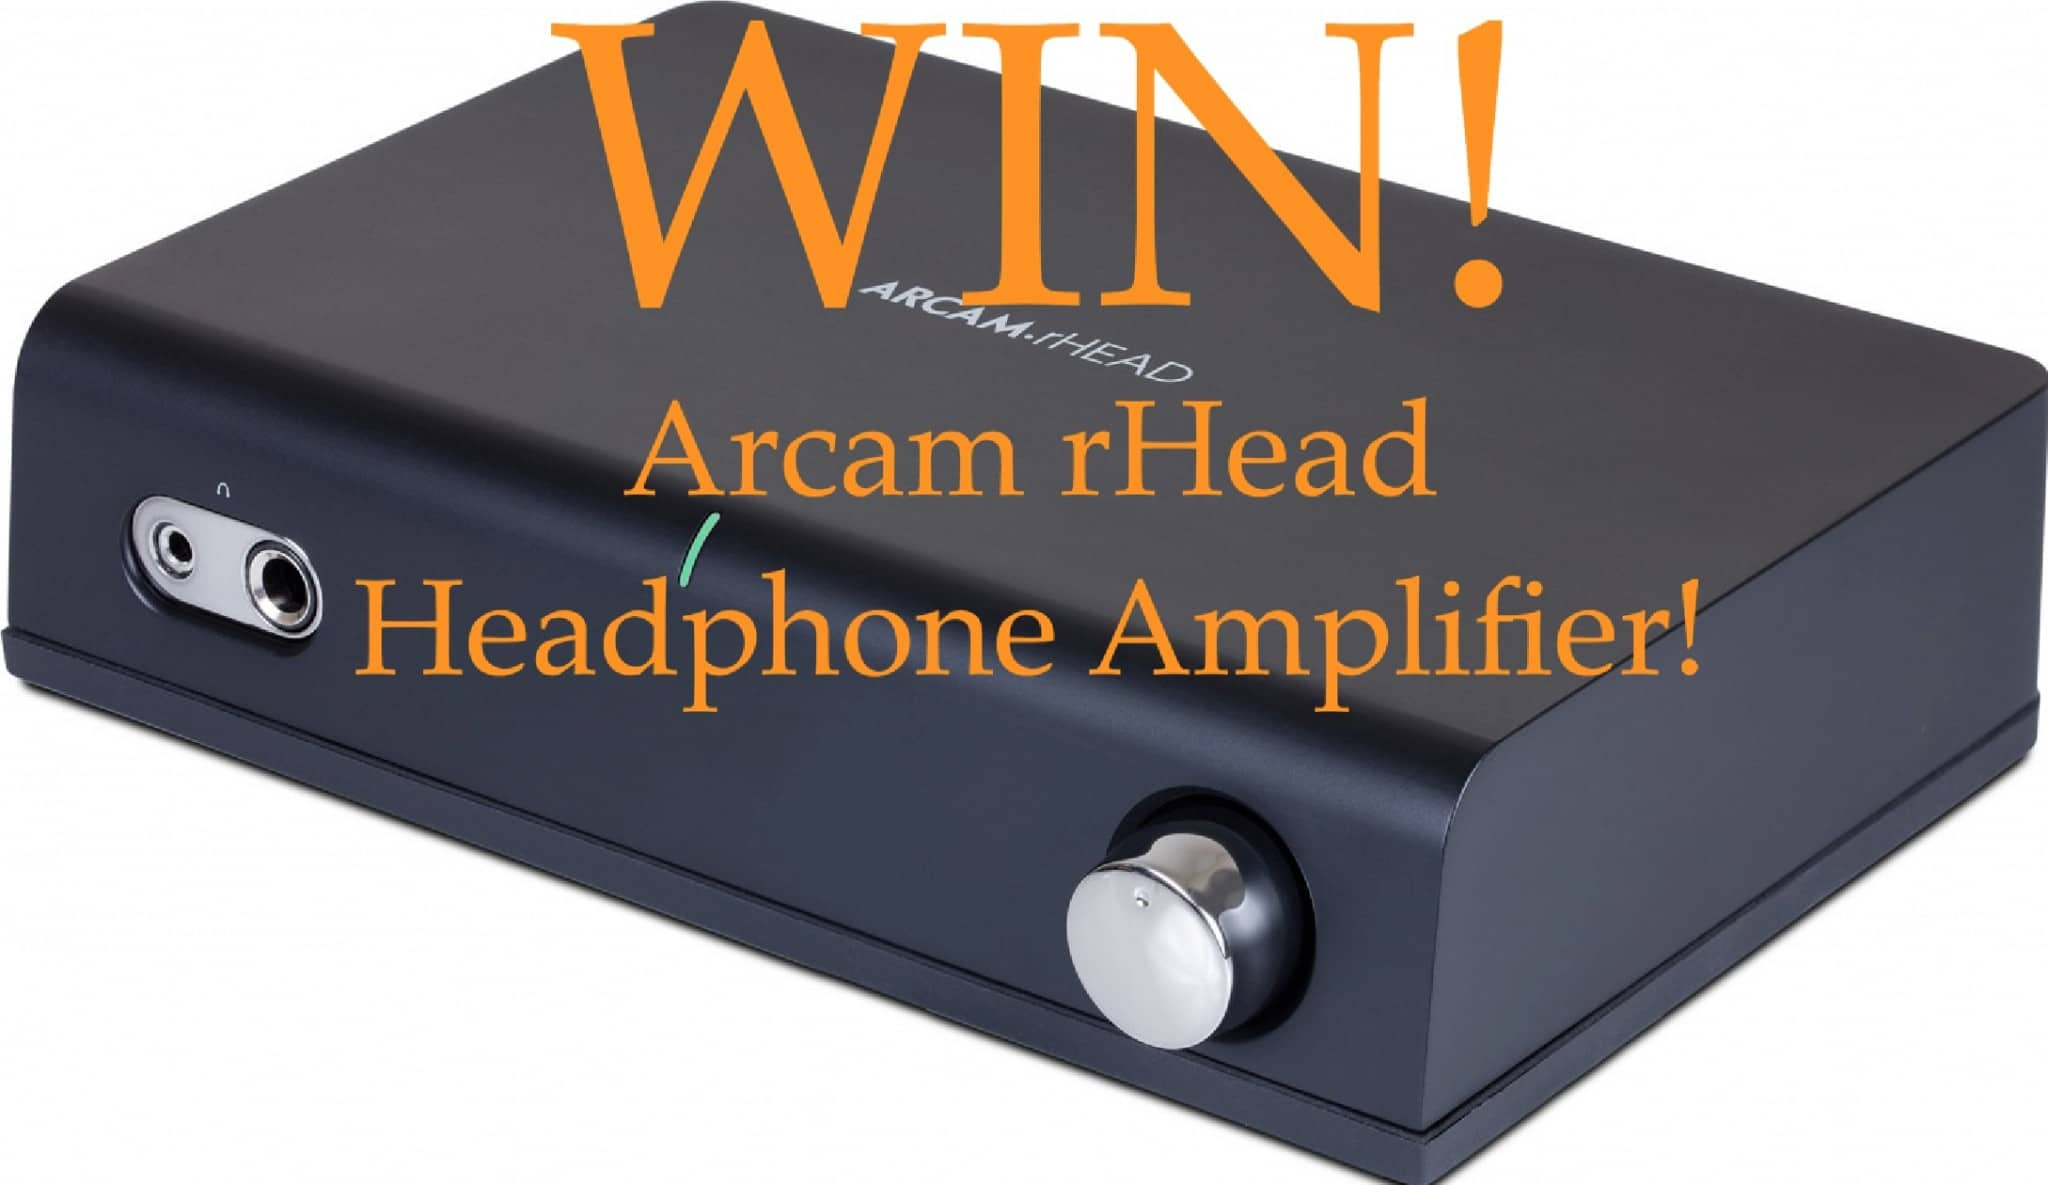 win an arc rhead headphones amplifier